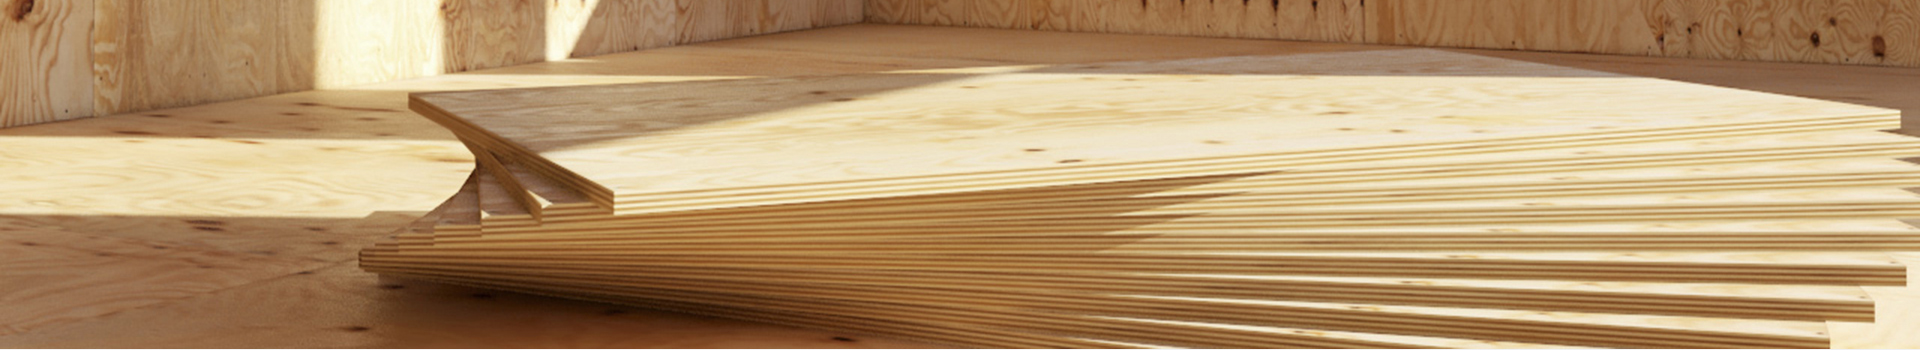 Plywood_1_RS